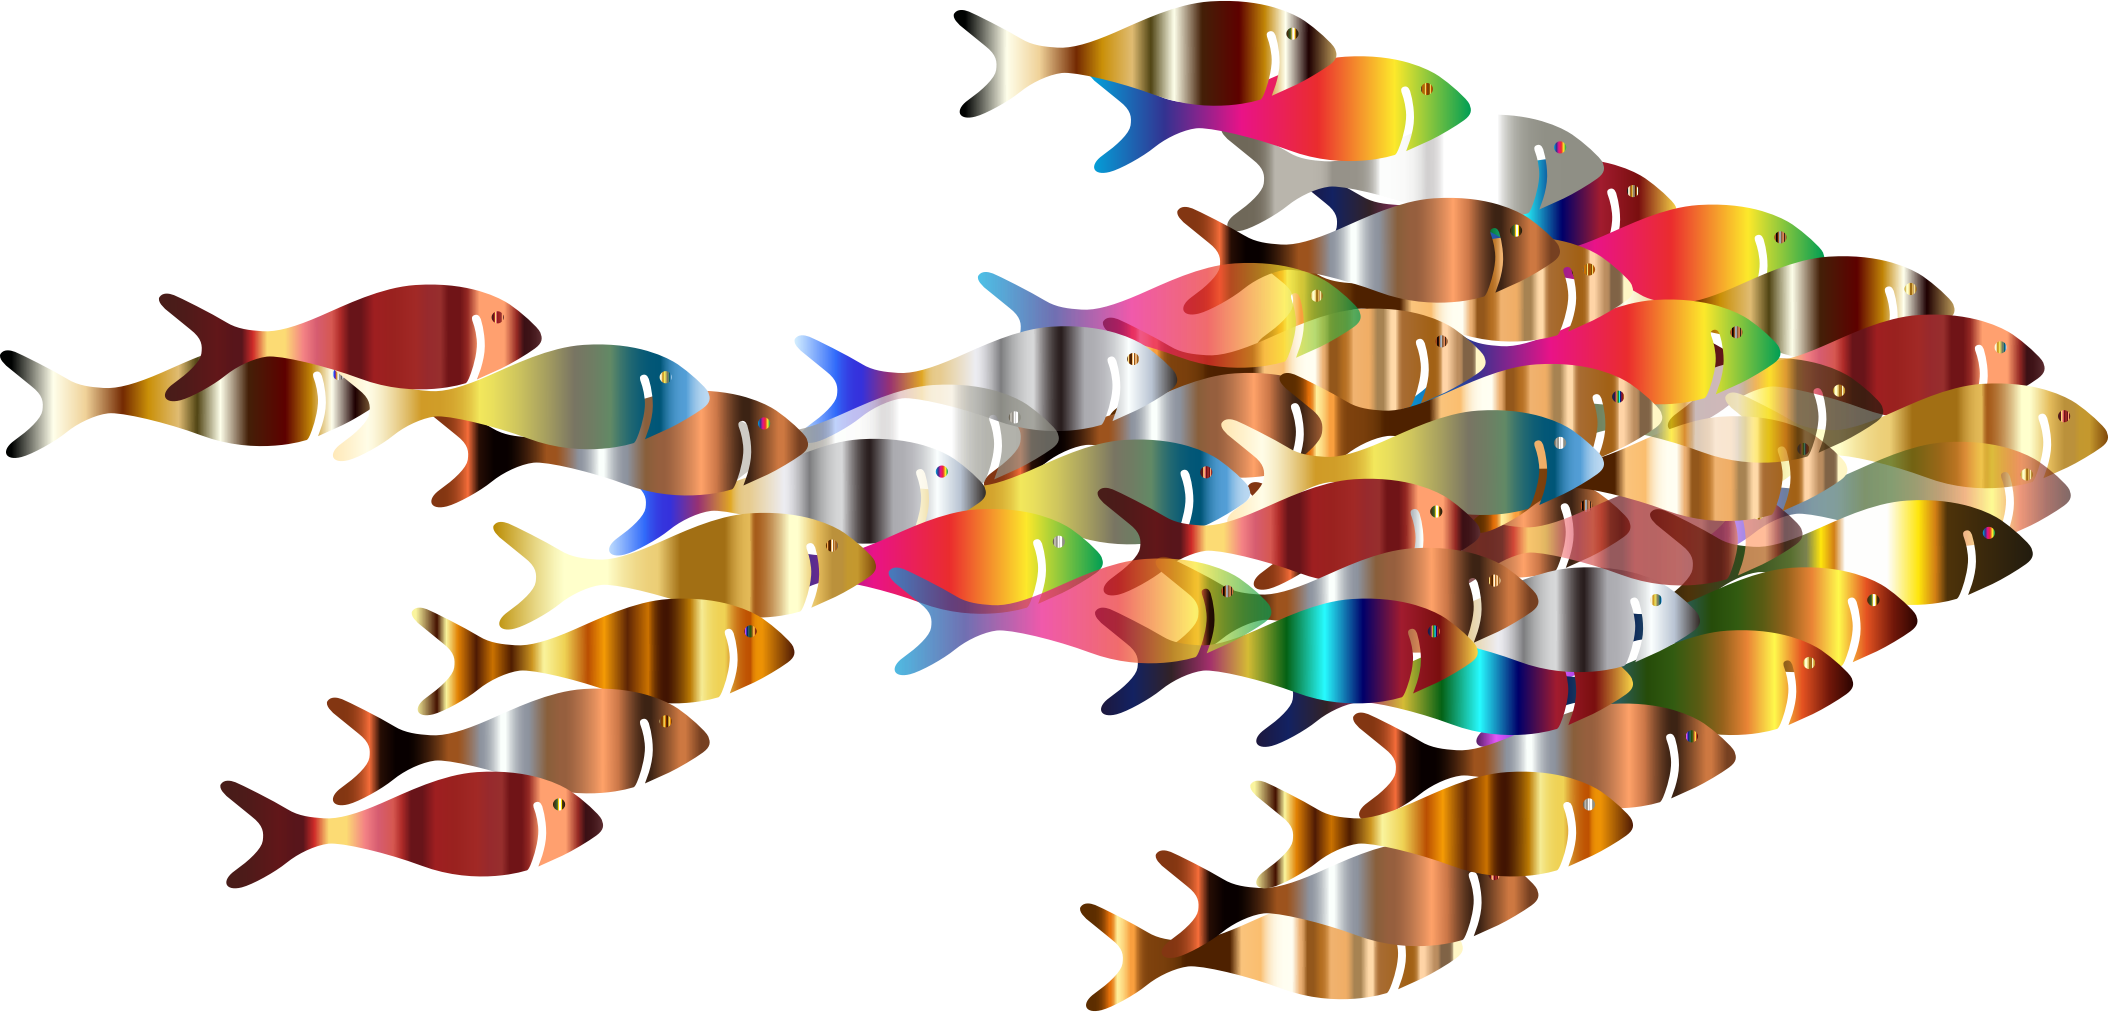 2109x1012 Chromatic Colorful Fish Fractal Icons Png